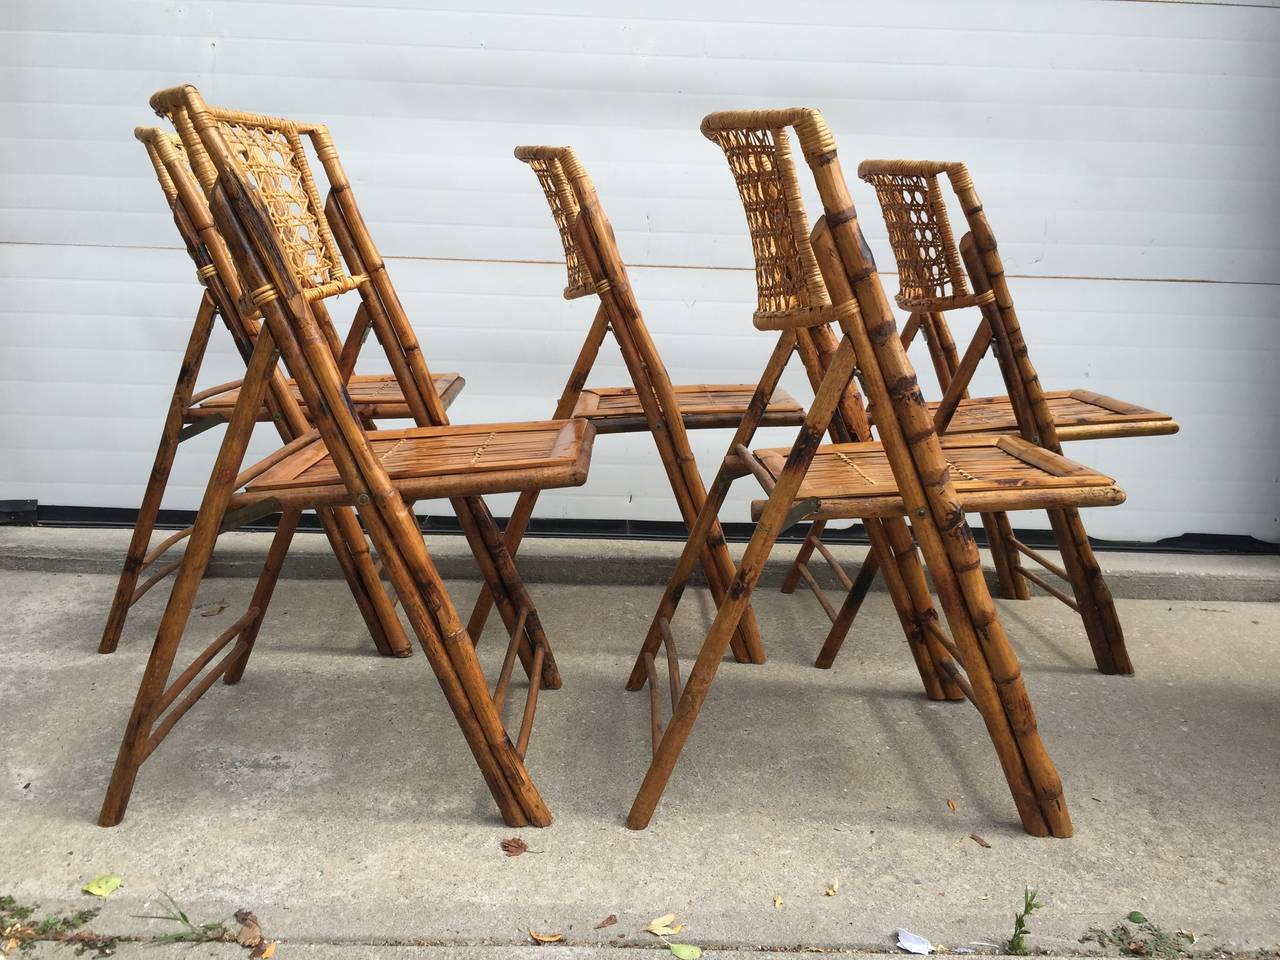 Set of Five Scorched Bamboo Frame Folding Chairs with Rattan Seat and Back at